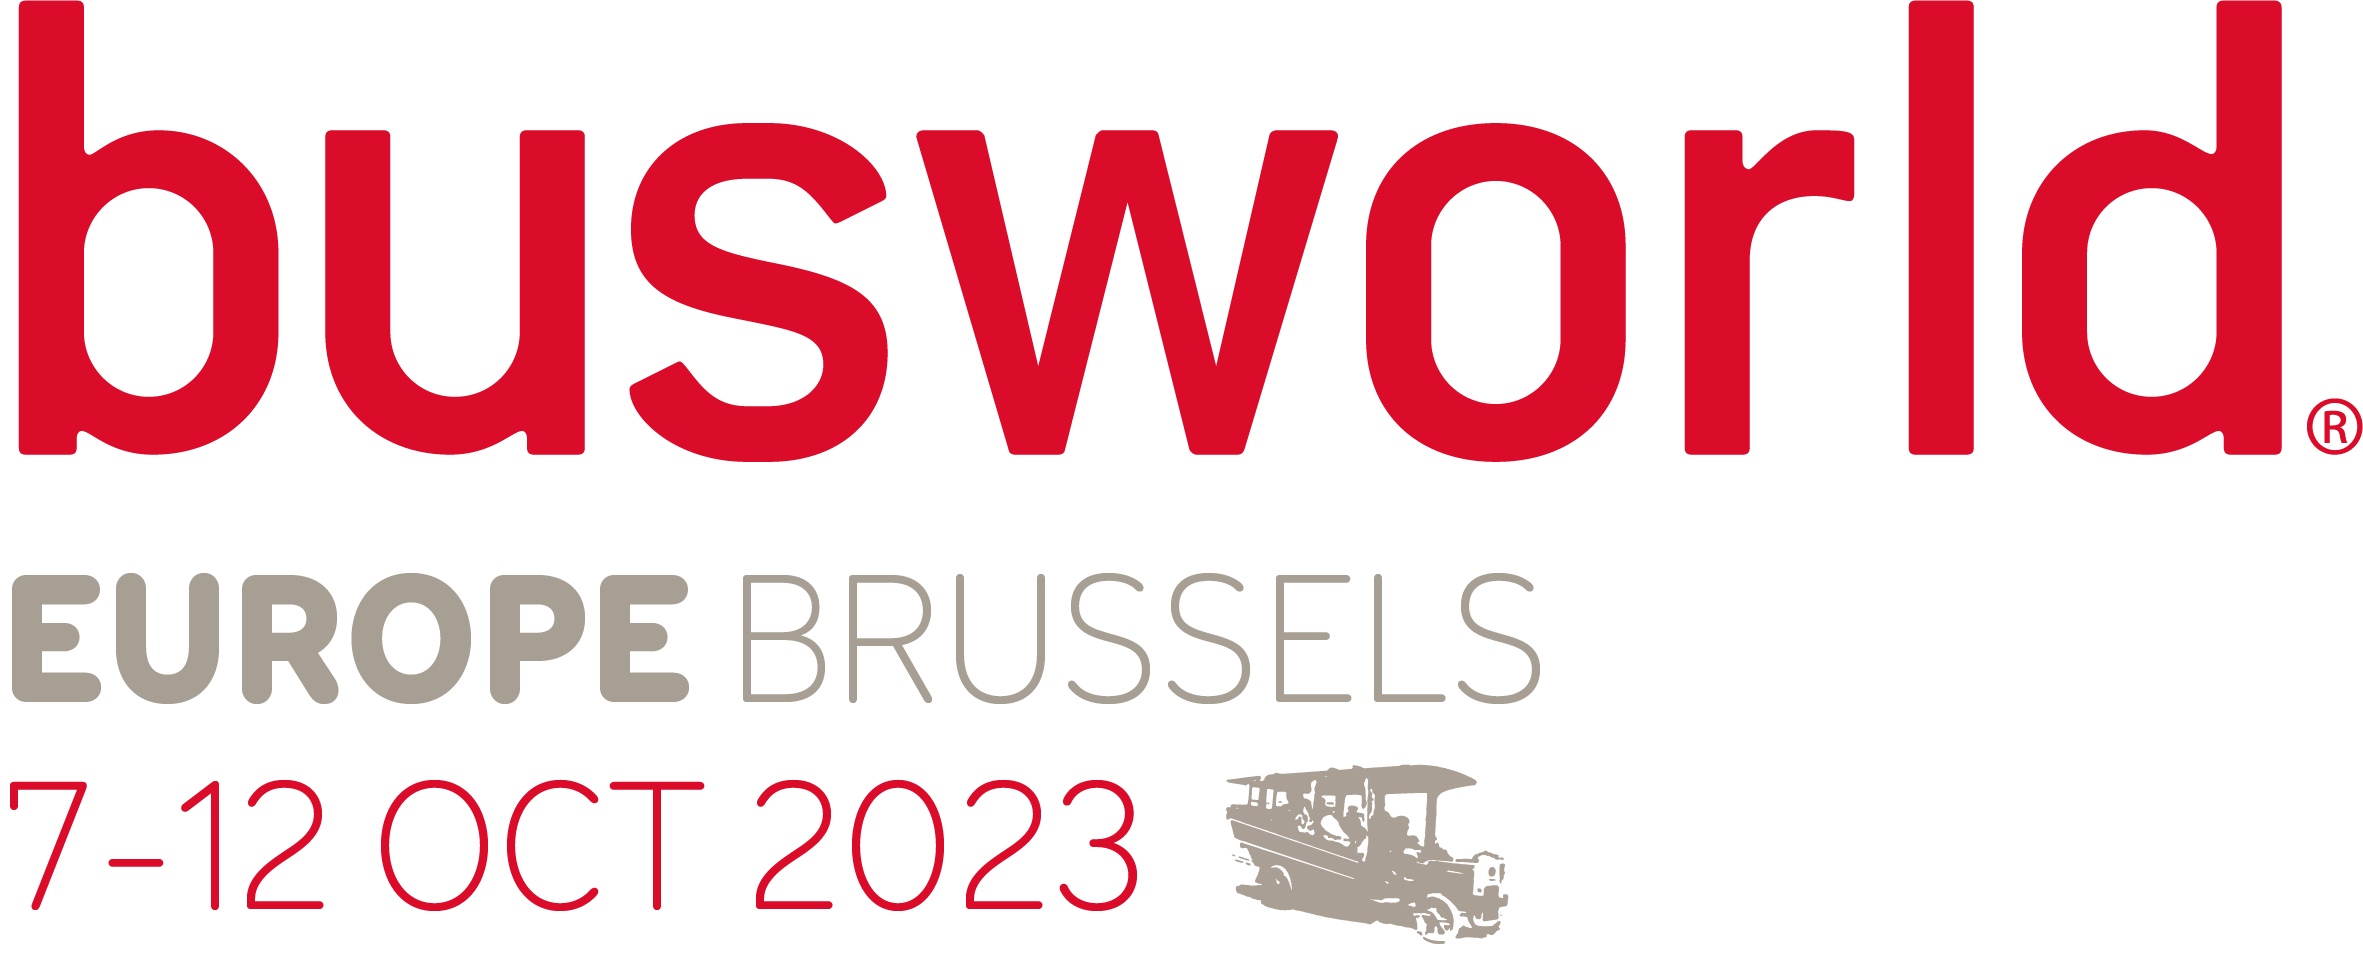 Busworld Europe 2023 logo